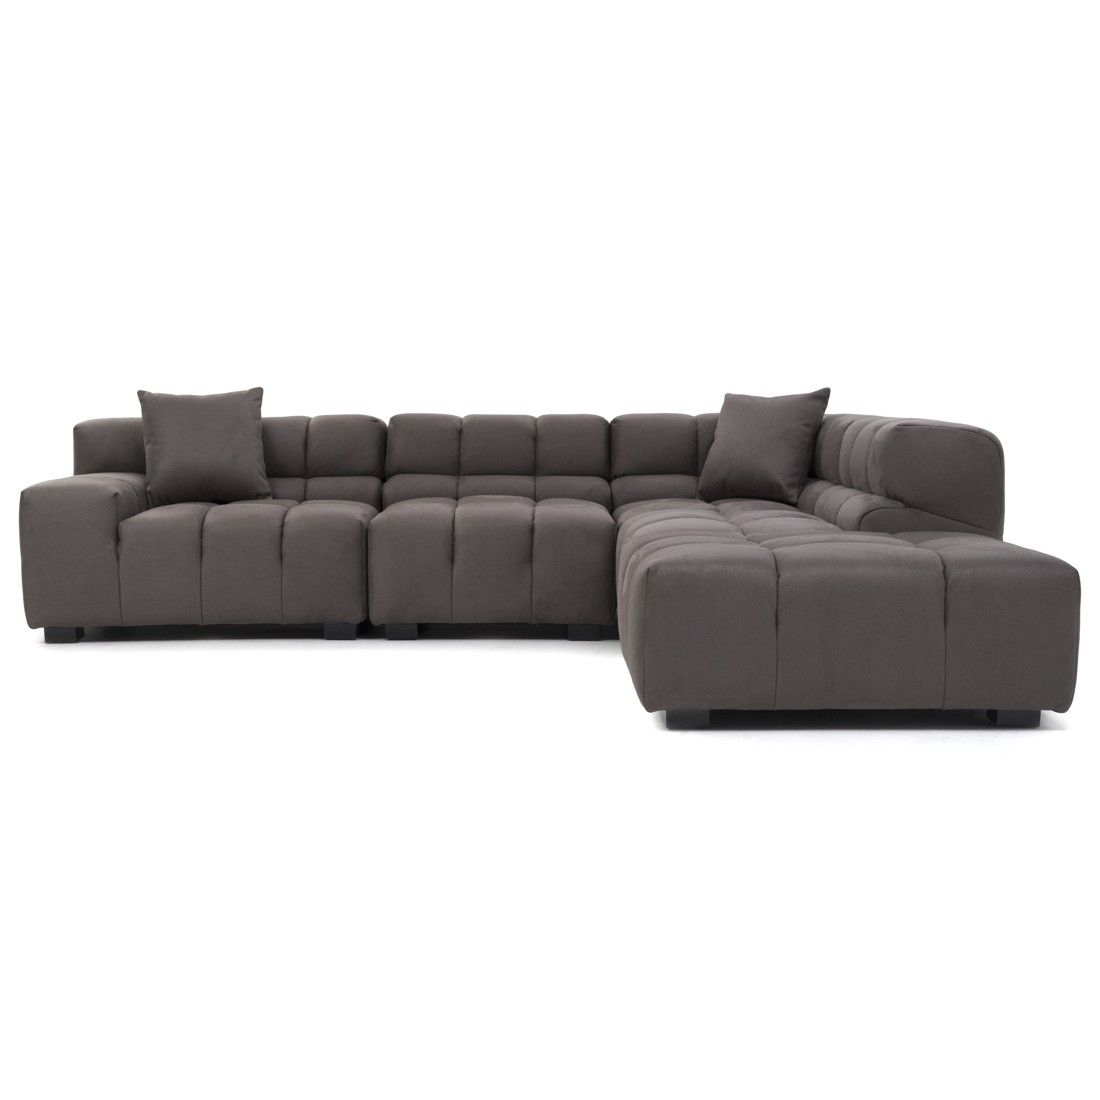 Sectionals - Norika | Mobilia | Sofa | Pinterest intended for Mobilia Sectional Sofas (Image 9 of 10)